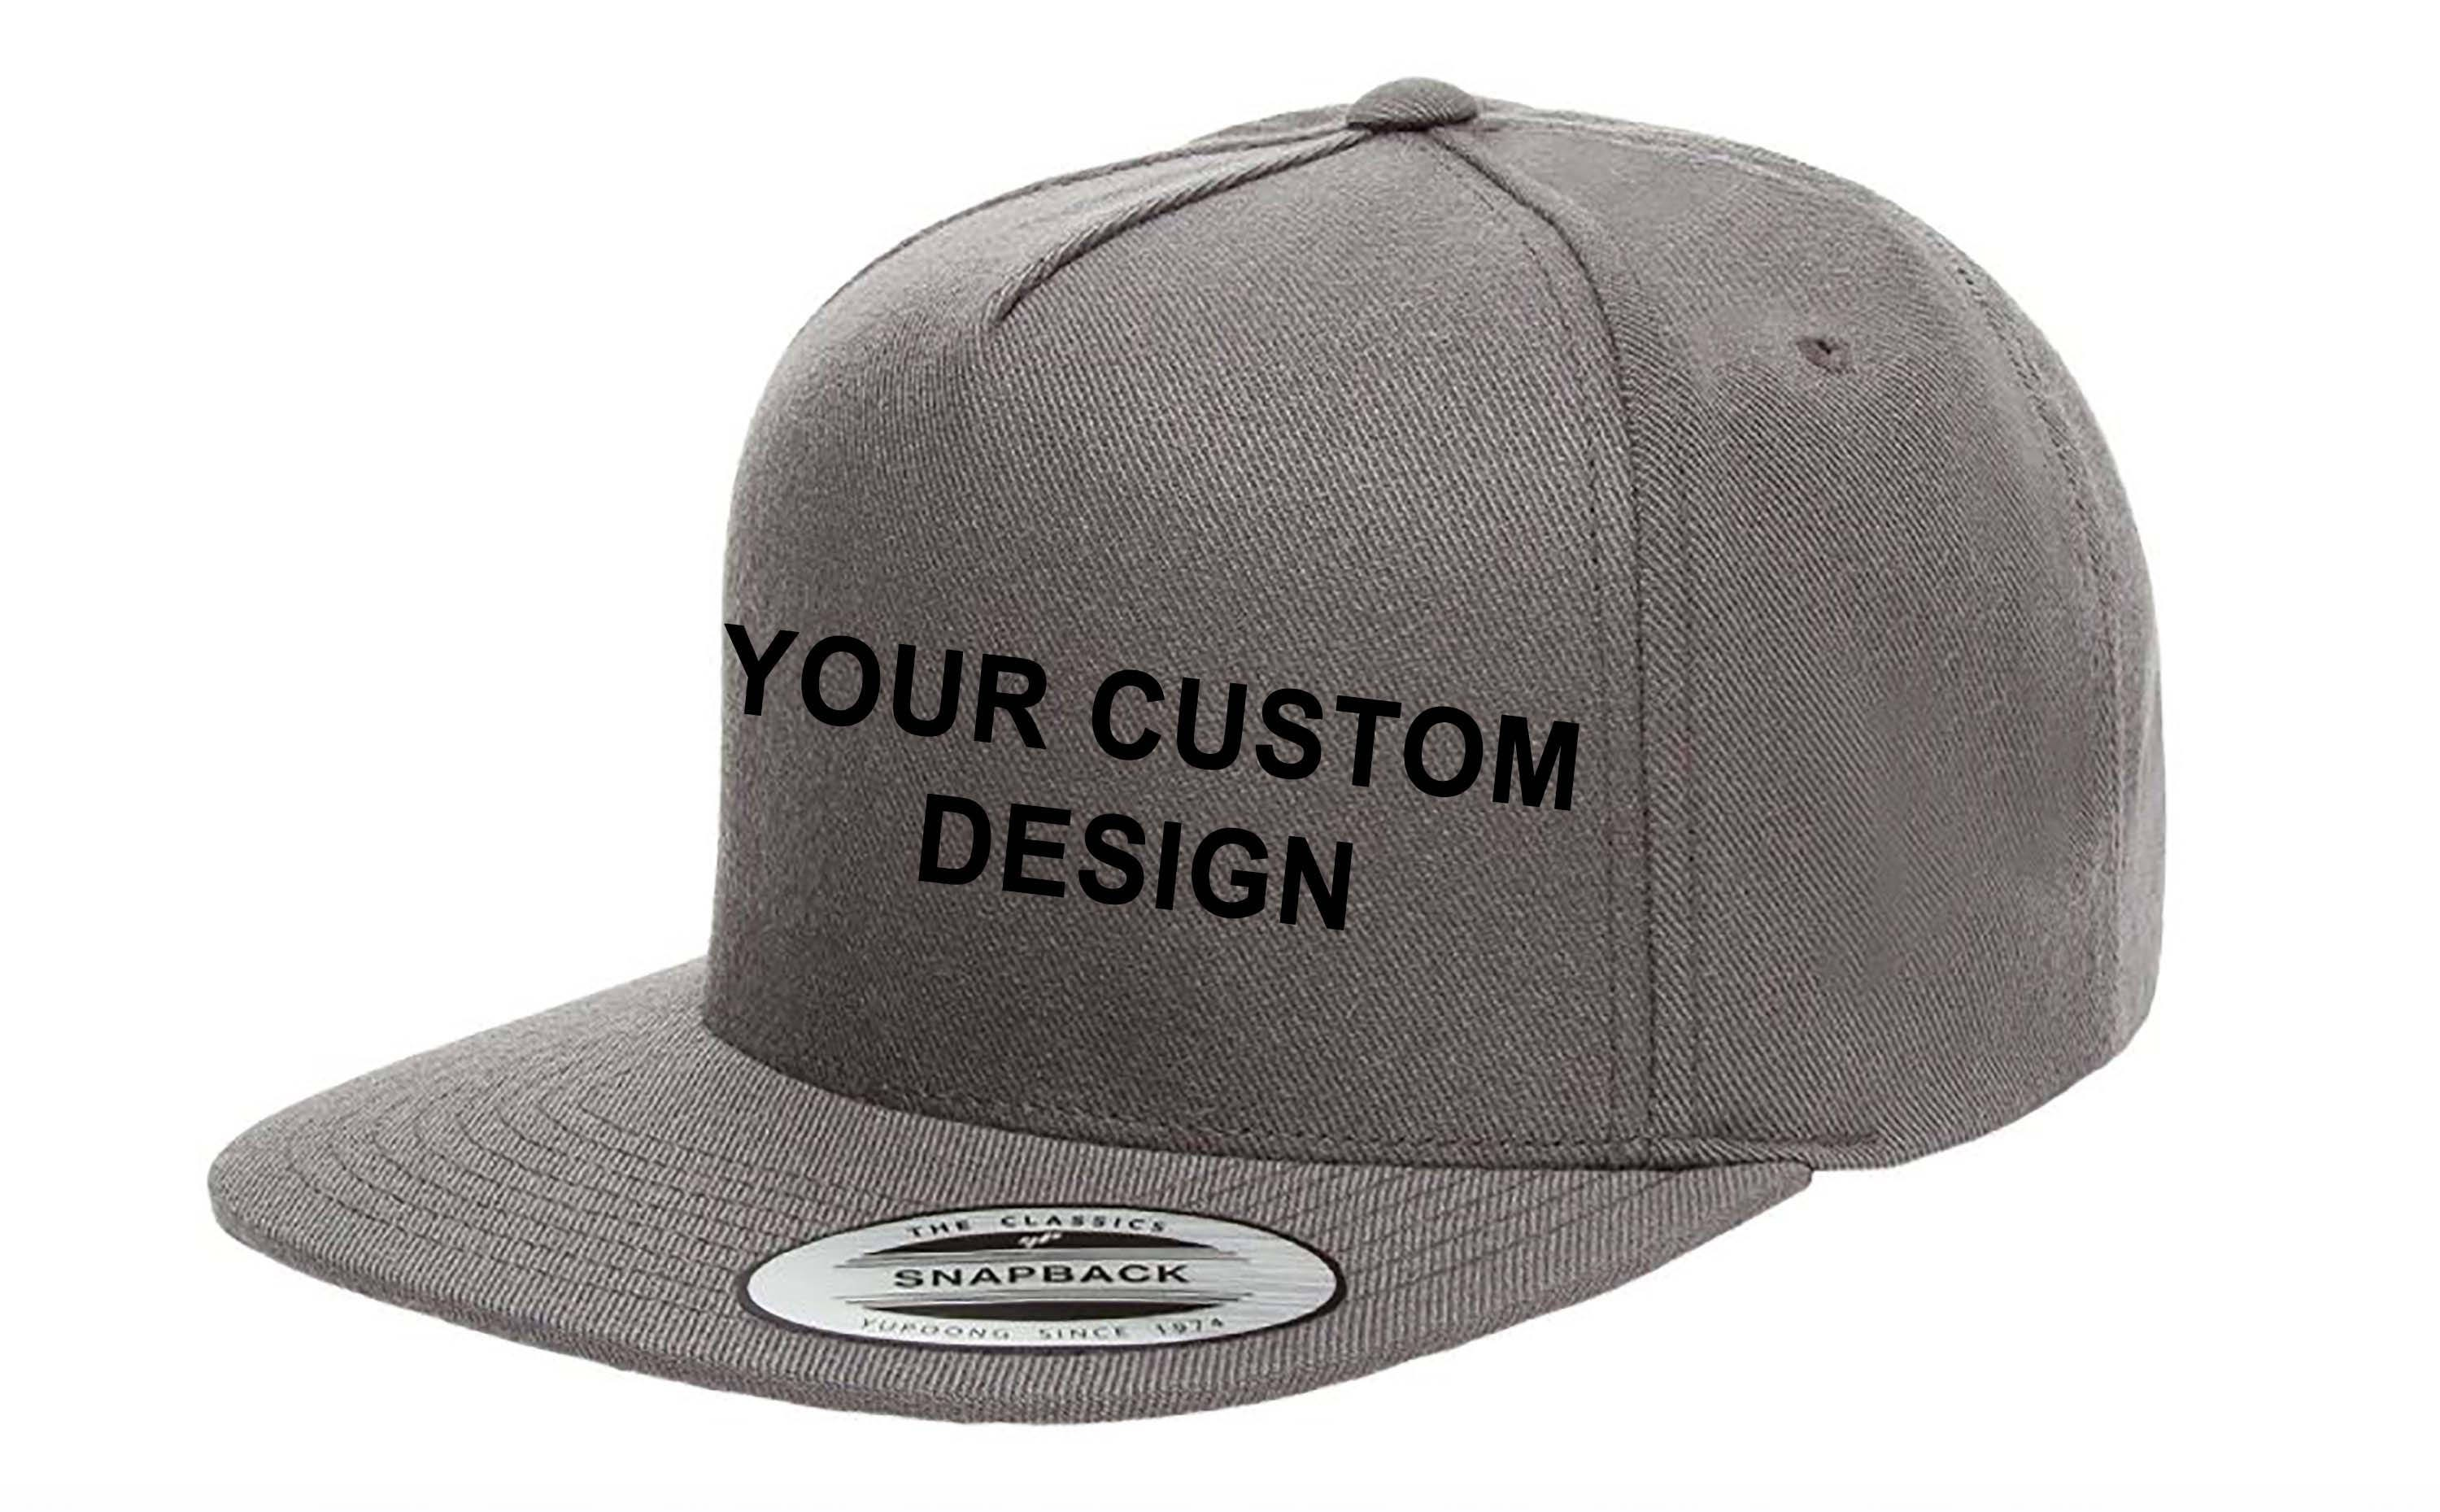 dd9798177 Custom 5 Panel Snapback Cap / Yupoong Classic Snap Backs / Embroidered Hat  / Custom Embroidery / Your Custom Apparel / Structured 5-Panel